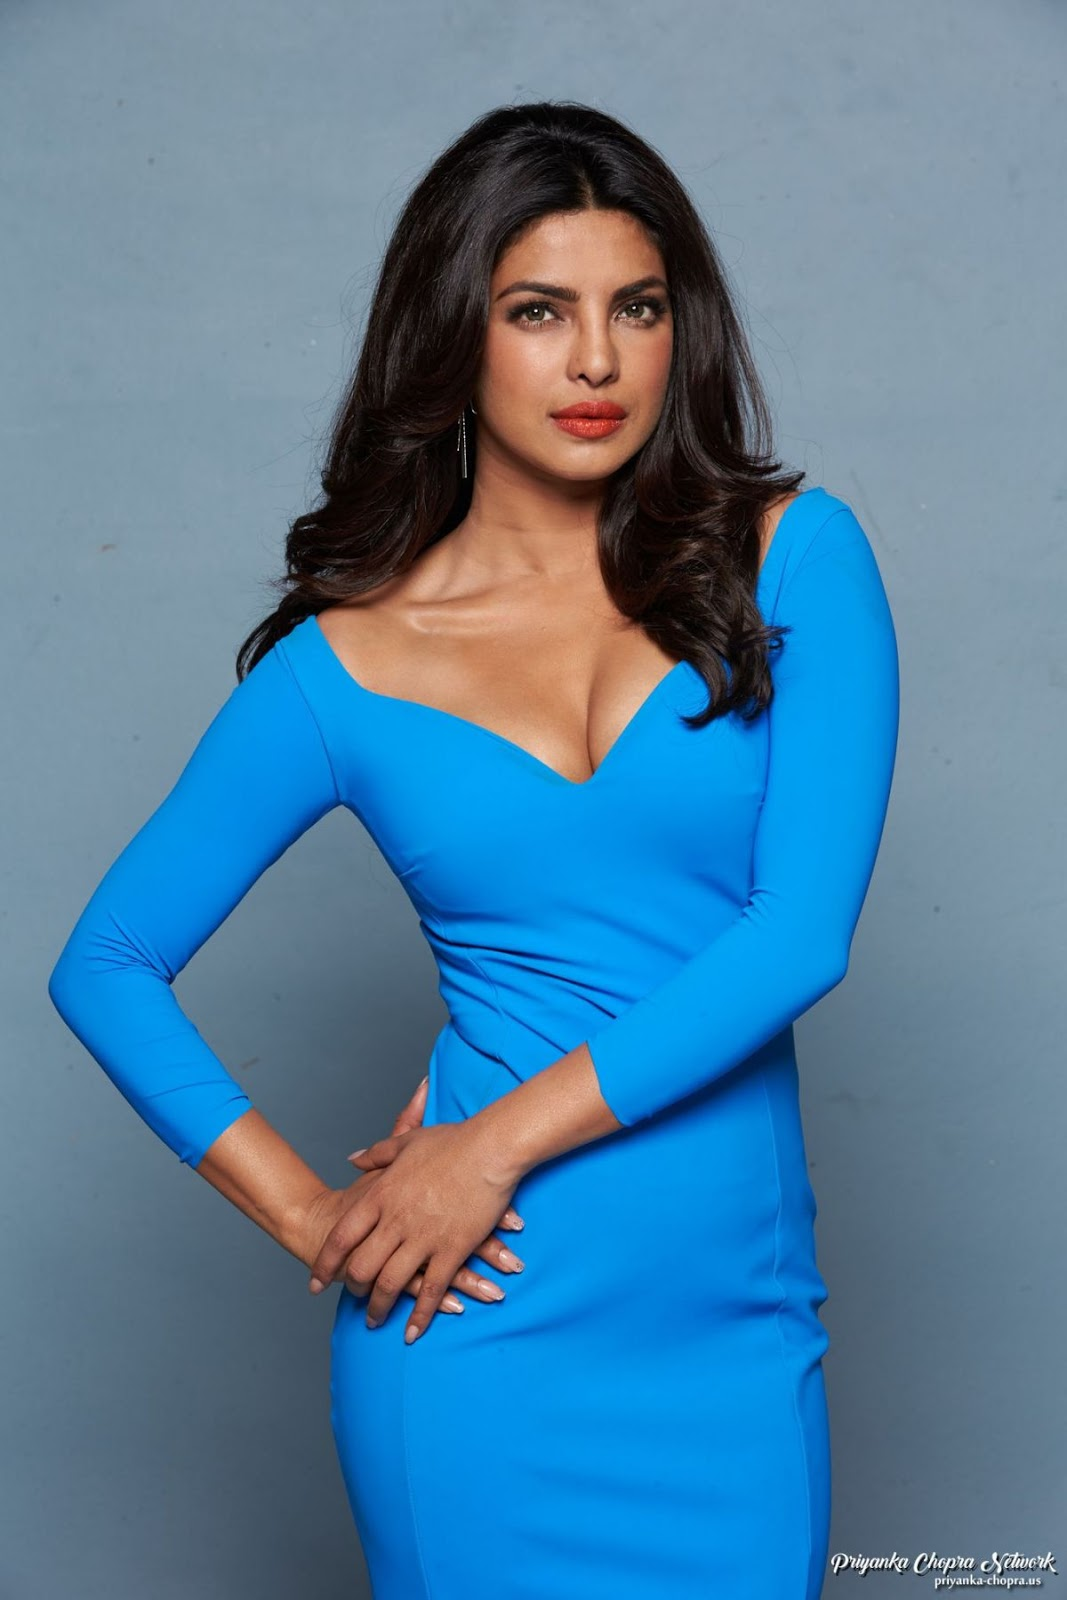 Priyanka Chopra Sizzles In Blue Gown For Baywatch Promo -5761